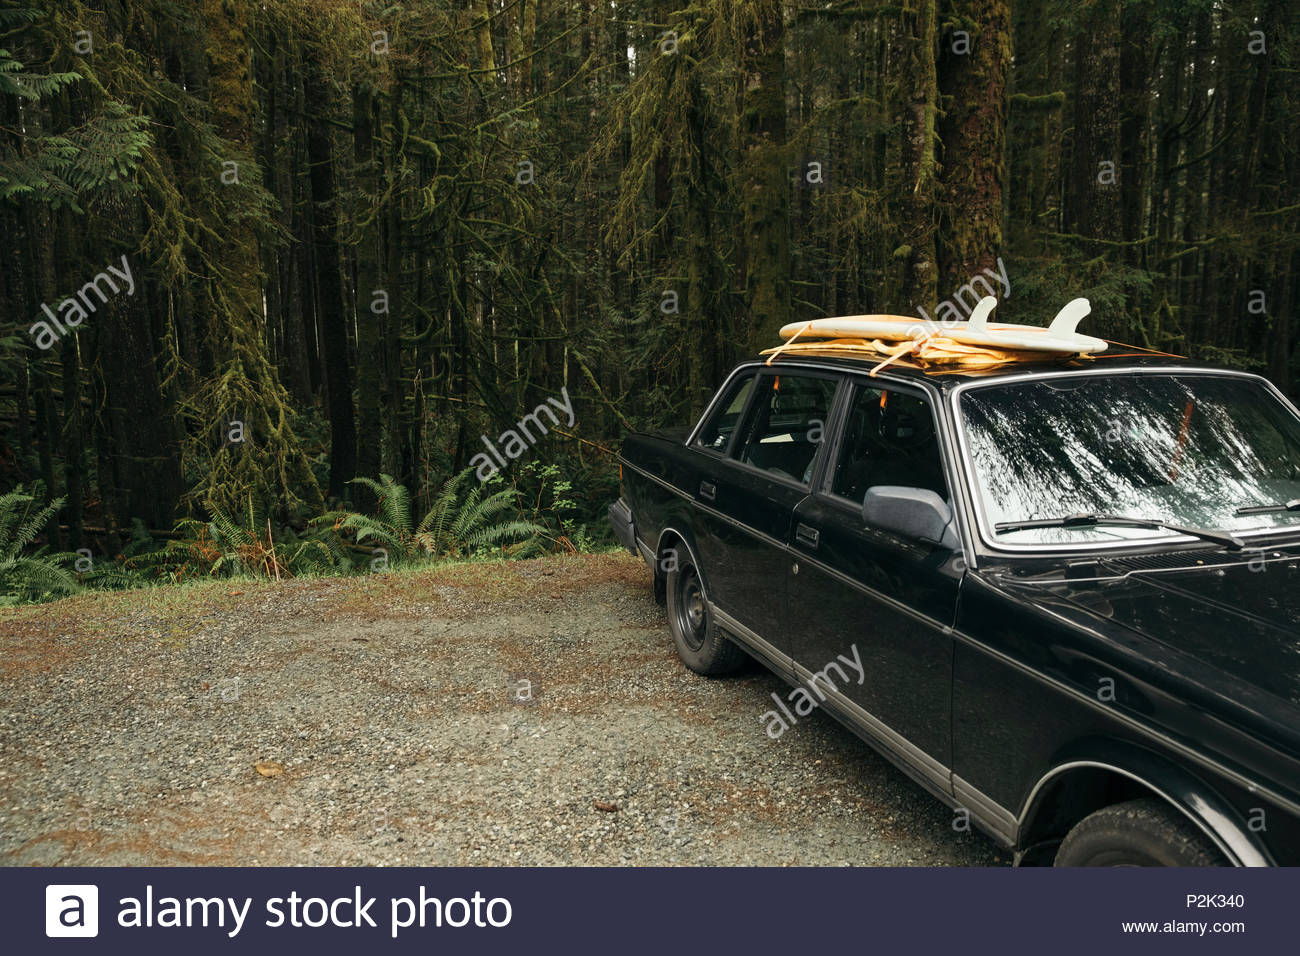 Surfboards on car in parking lot in woods - Stock Image